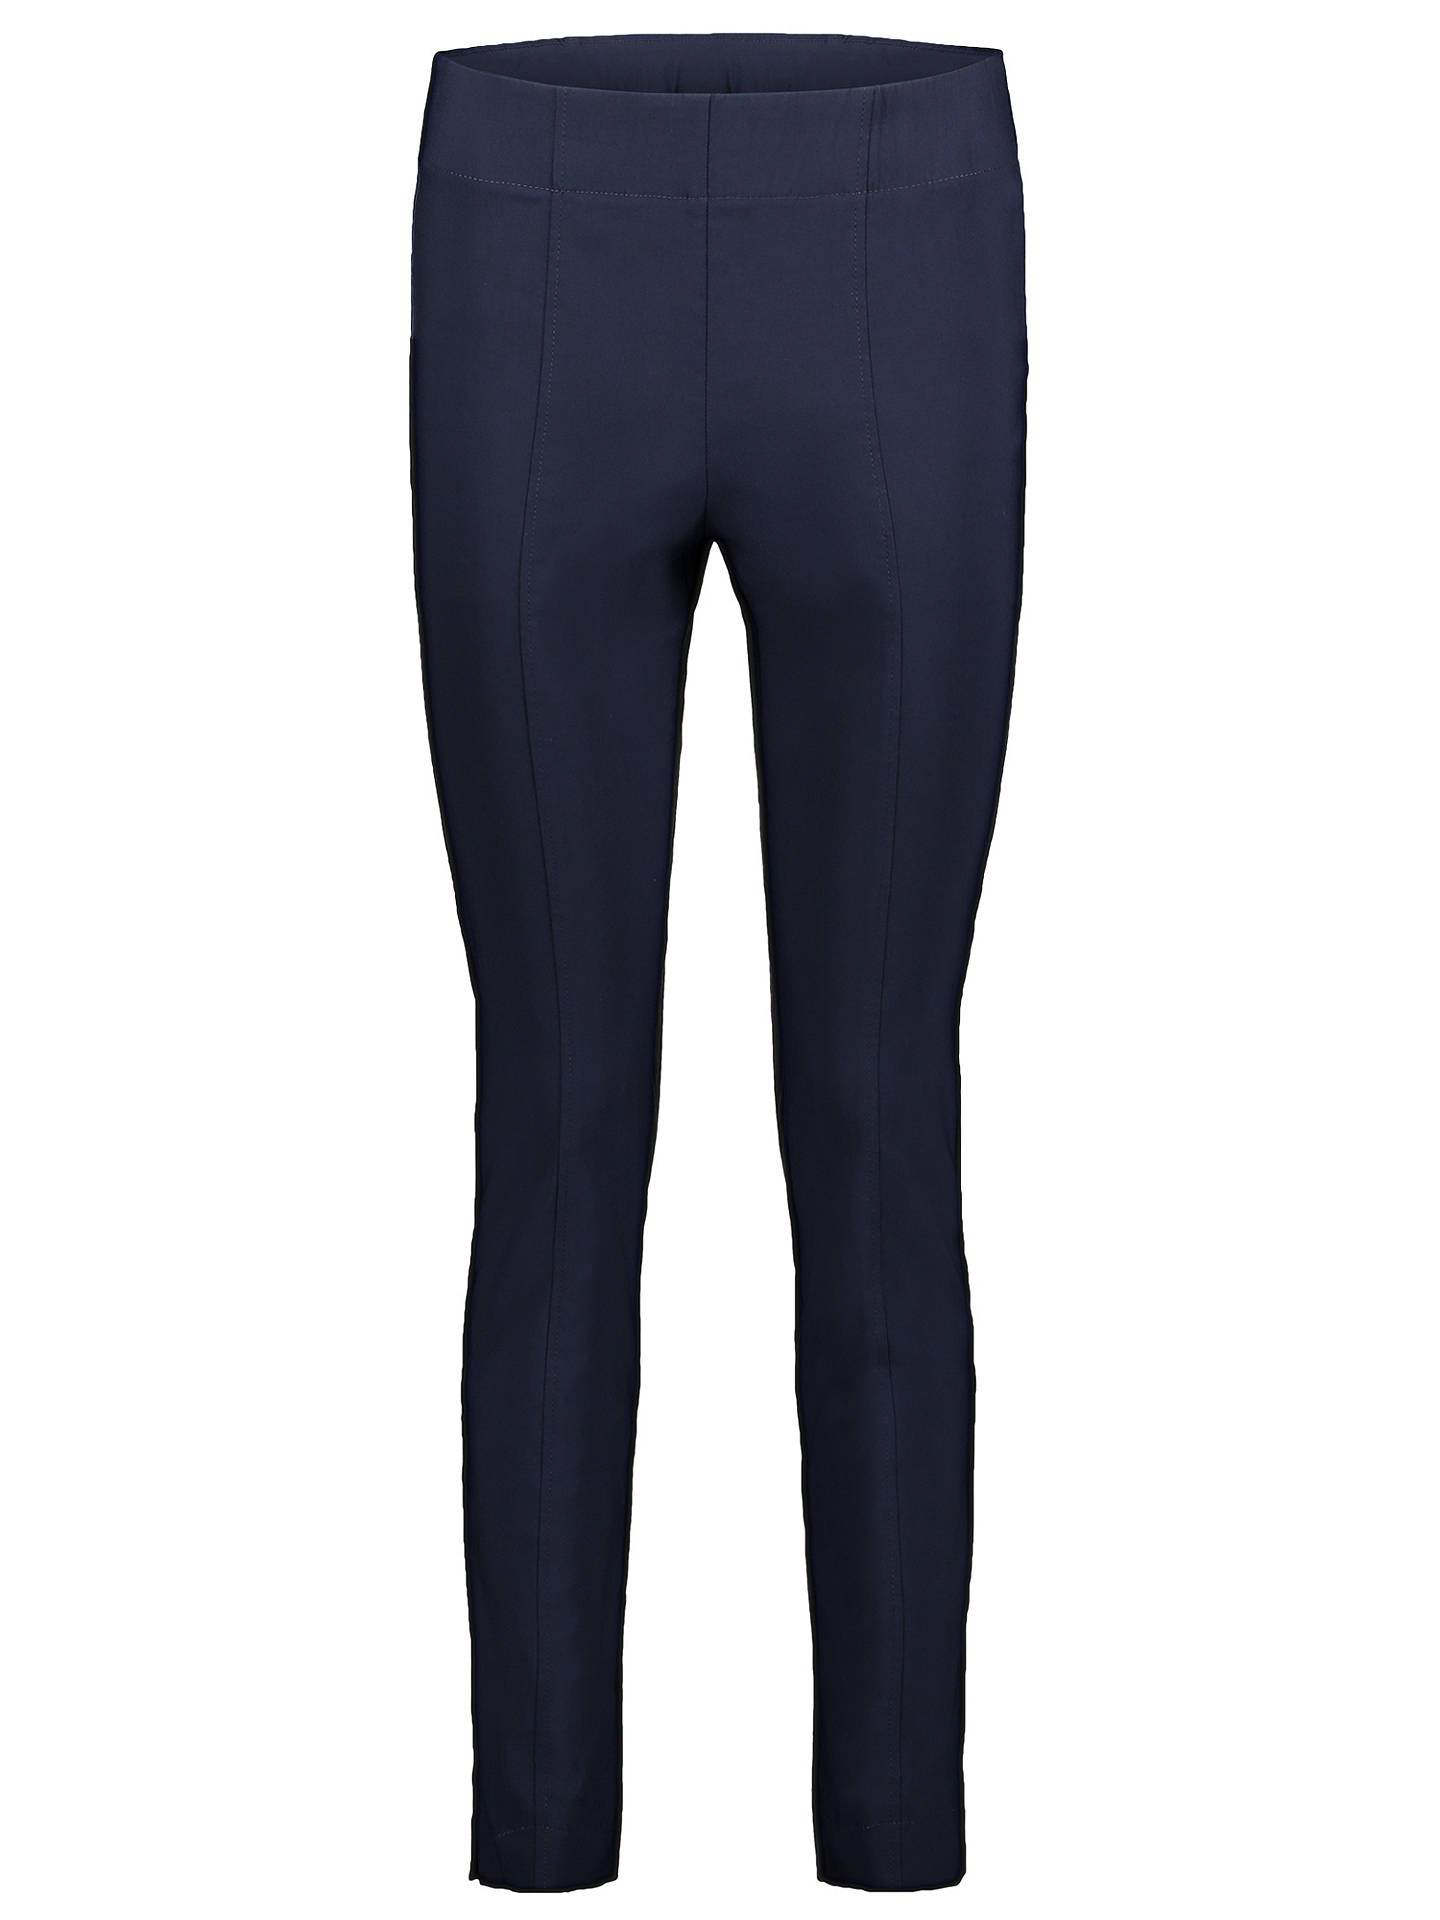 Buy Betty Barclay Pull-On Trousers, Dark Sky, 10 Online at johnlewis.com